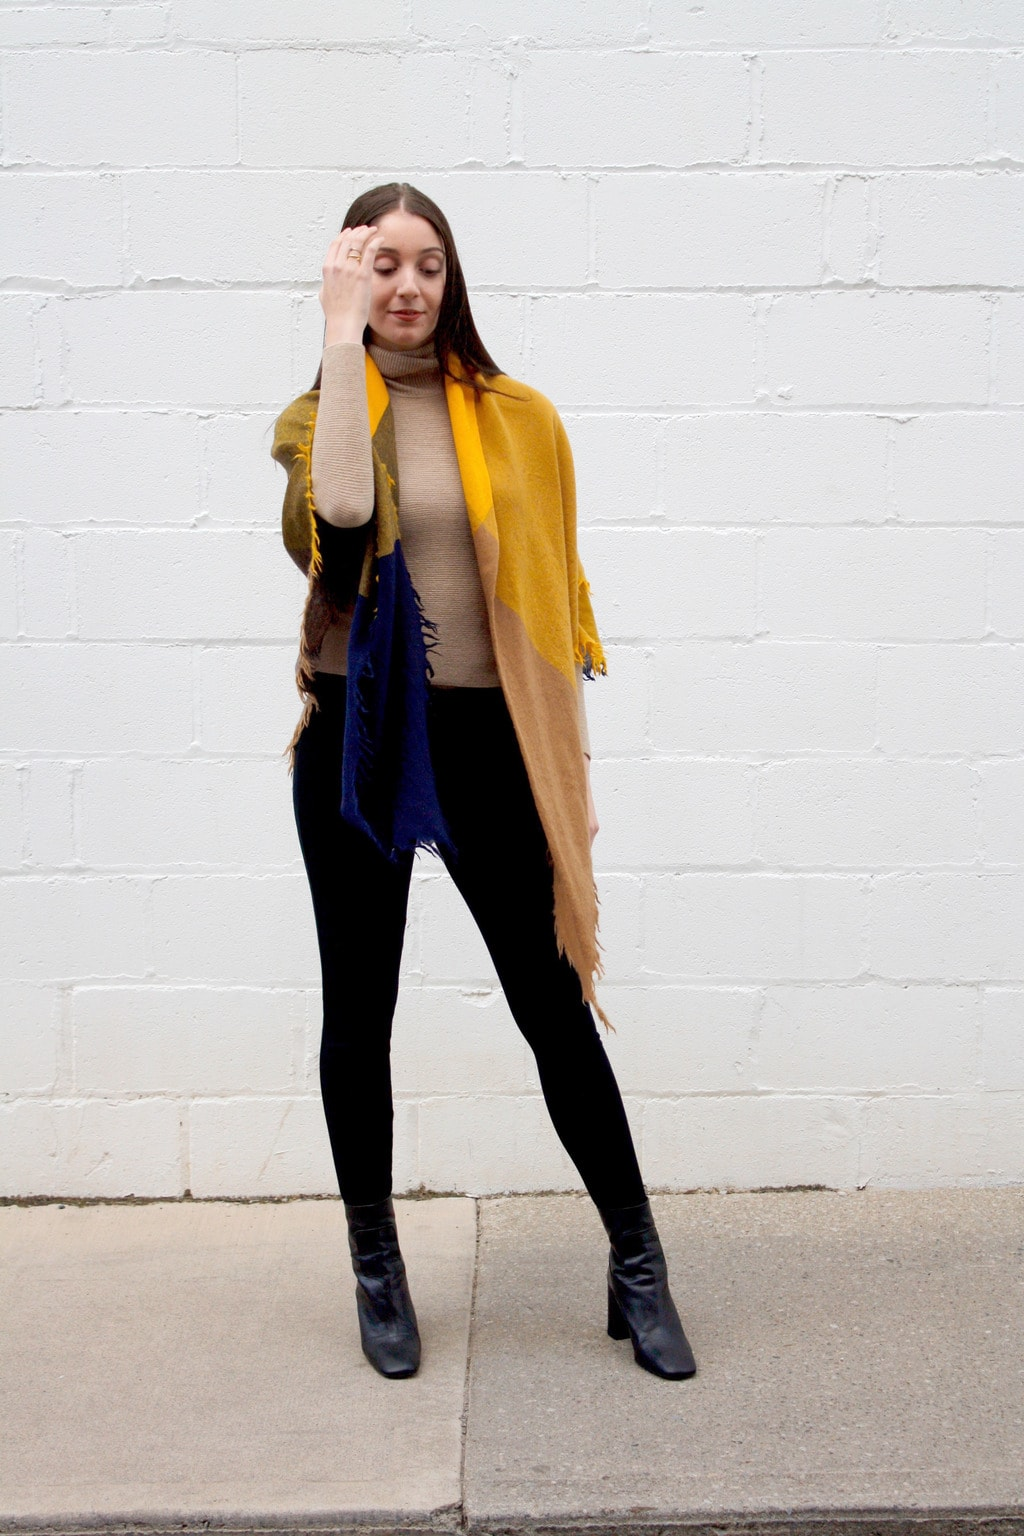 College student street style at Western University